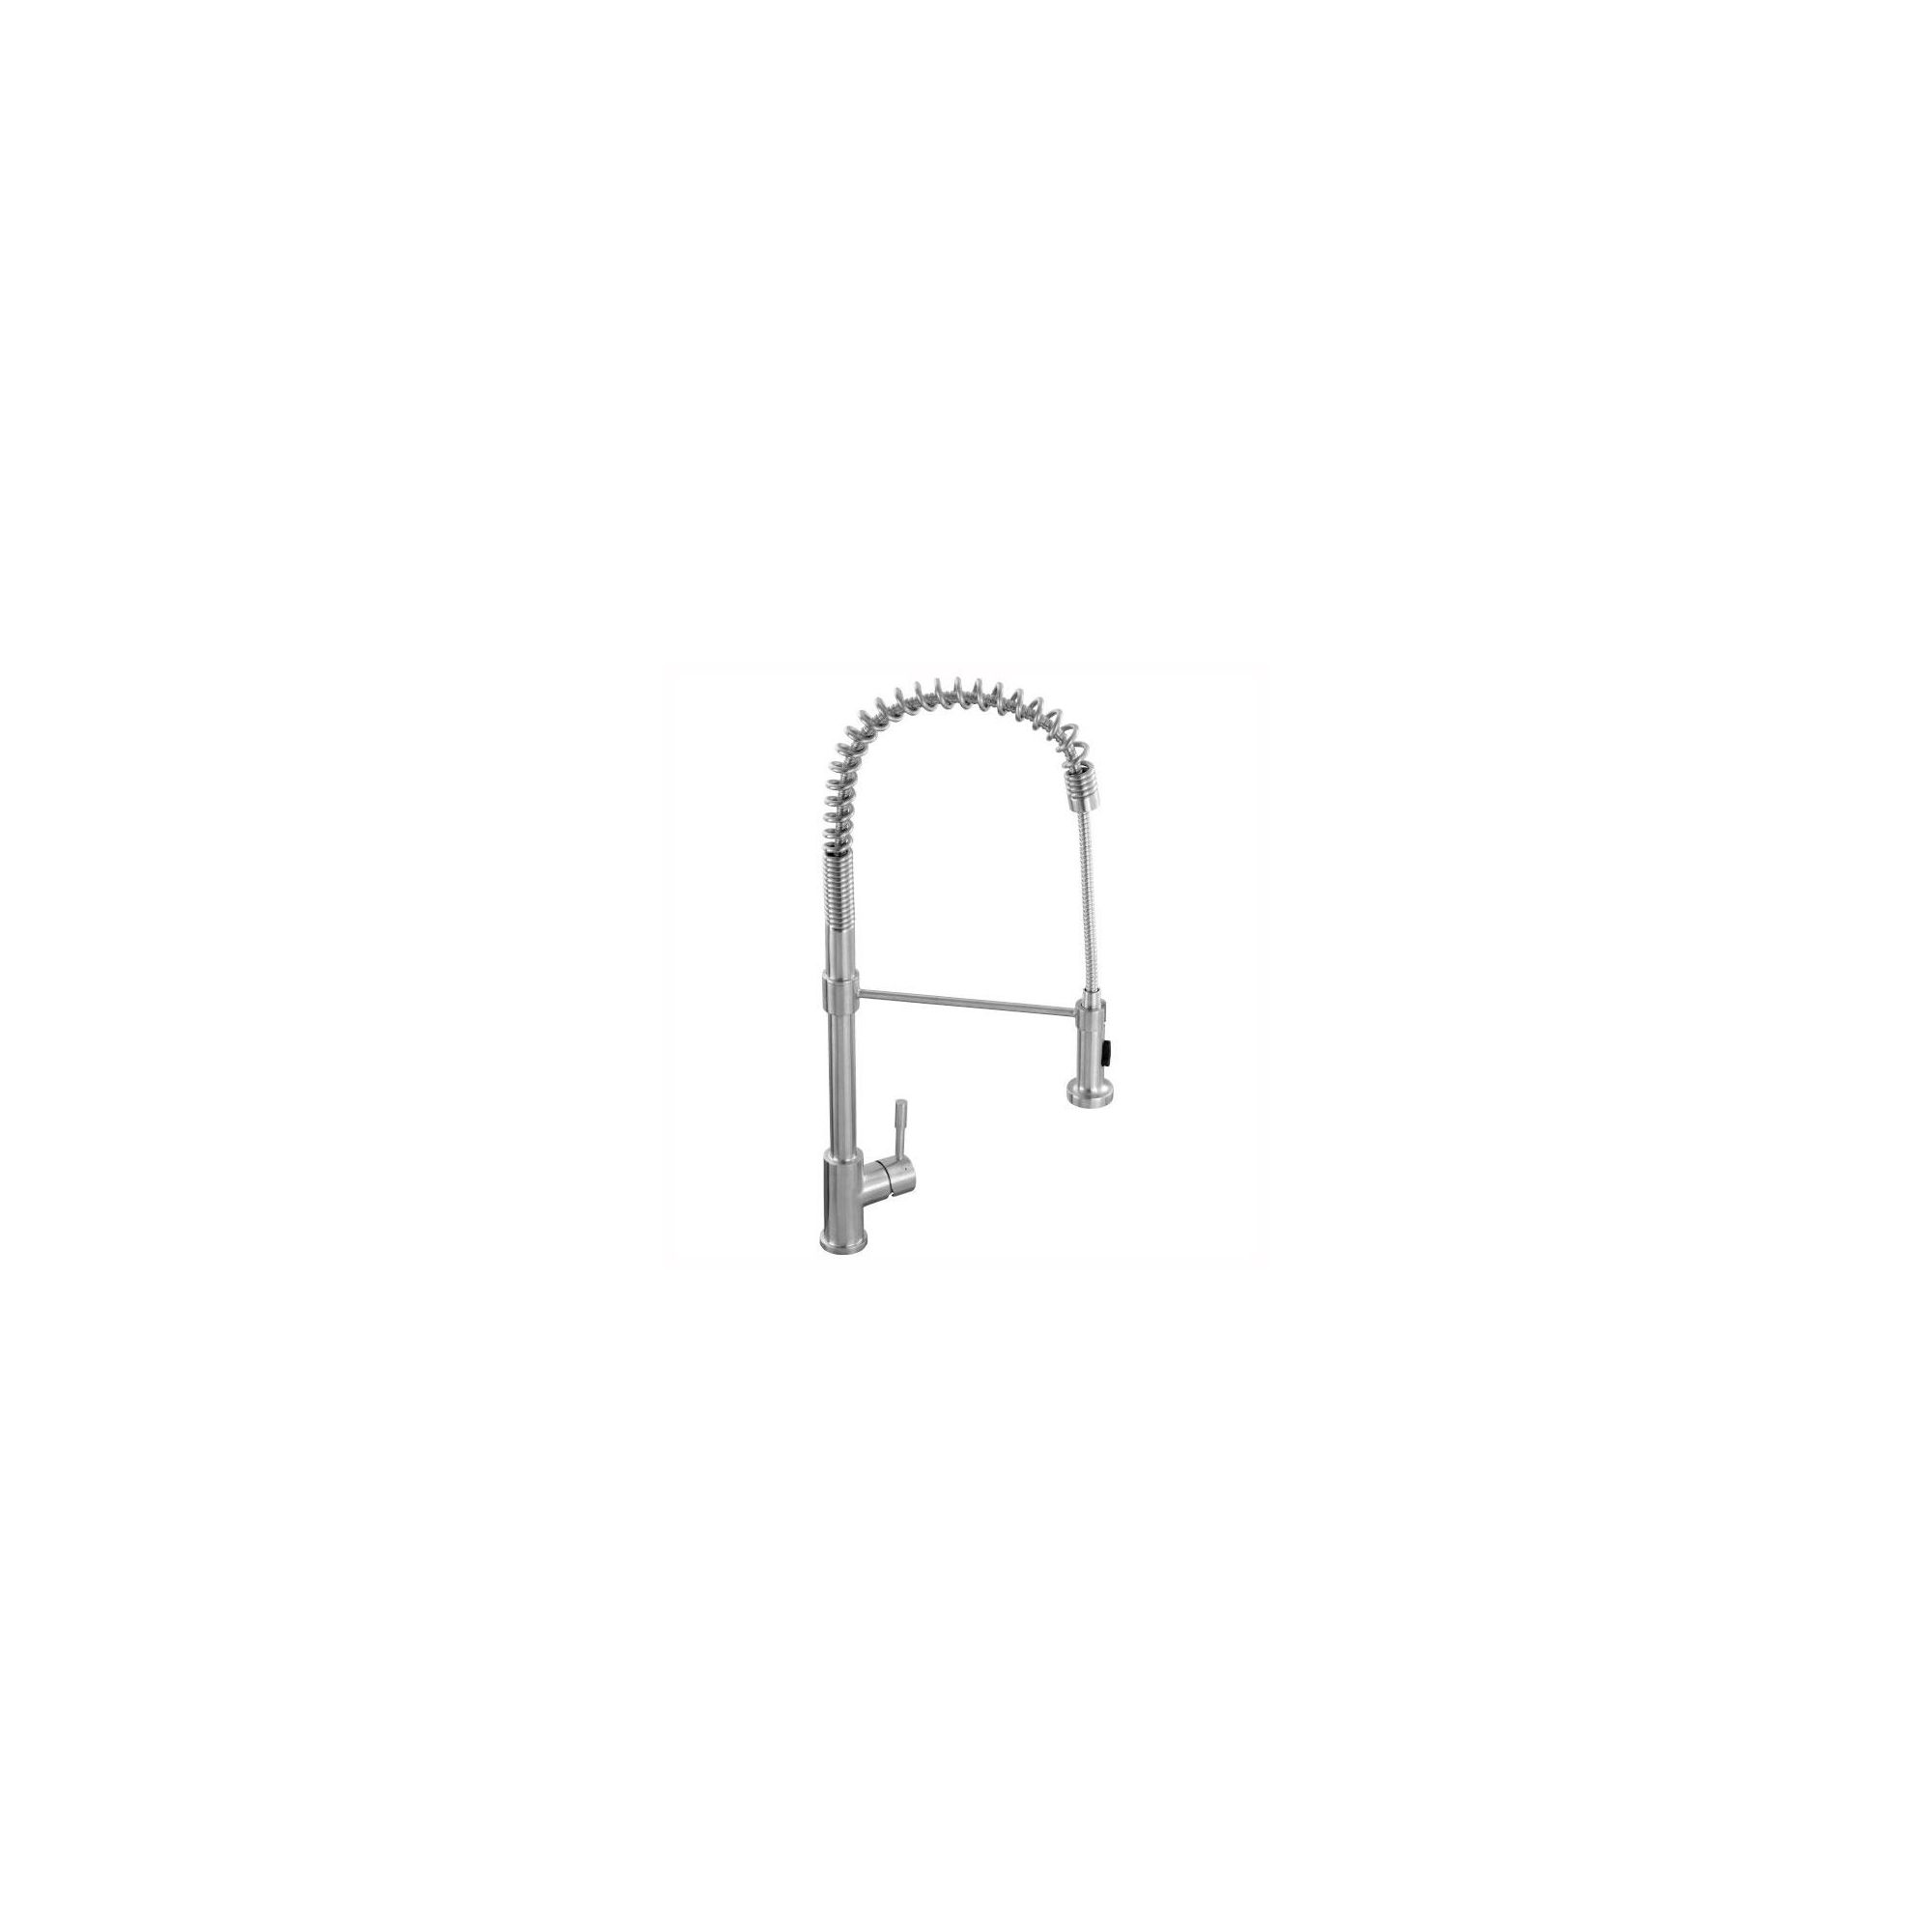 Franke Swiss Pro Pull-Out Nozzle Kitchen Sink Mixer Tap, Stainless Steel at Tesco Direct